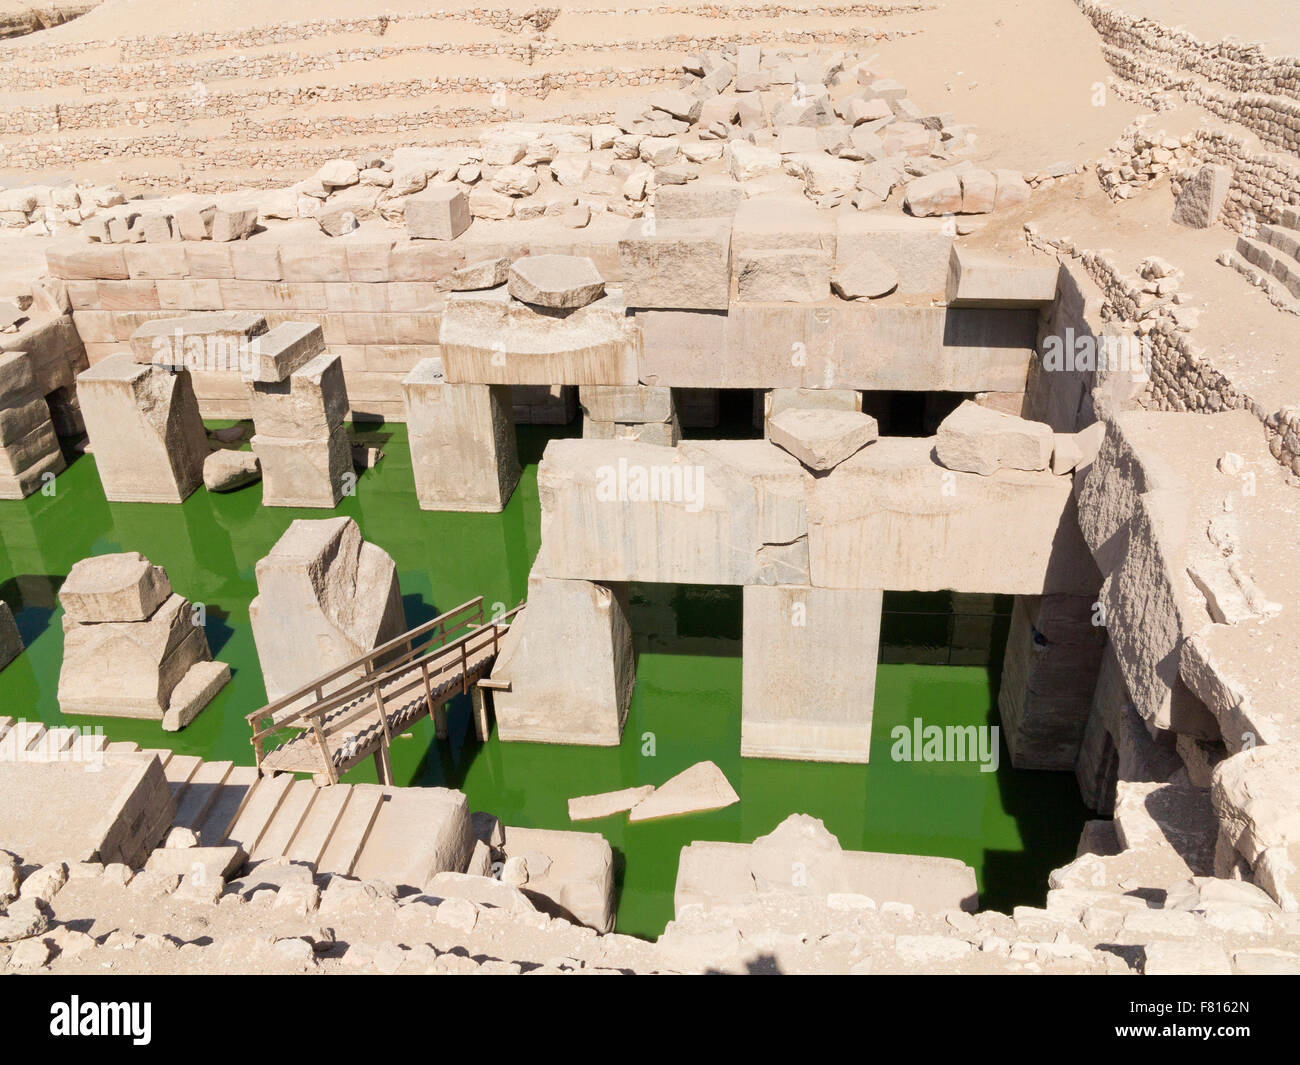 The Osireion at the Temple of Seti I at Abydos, with bright green algae in water, Nile Valley, Egypt, Africa Stock Photo